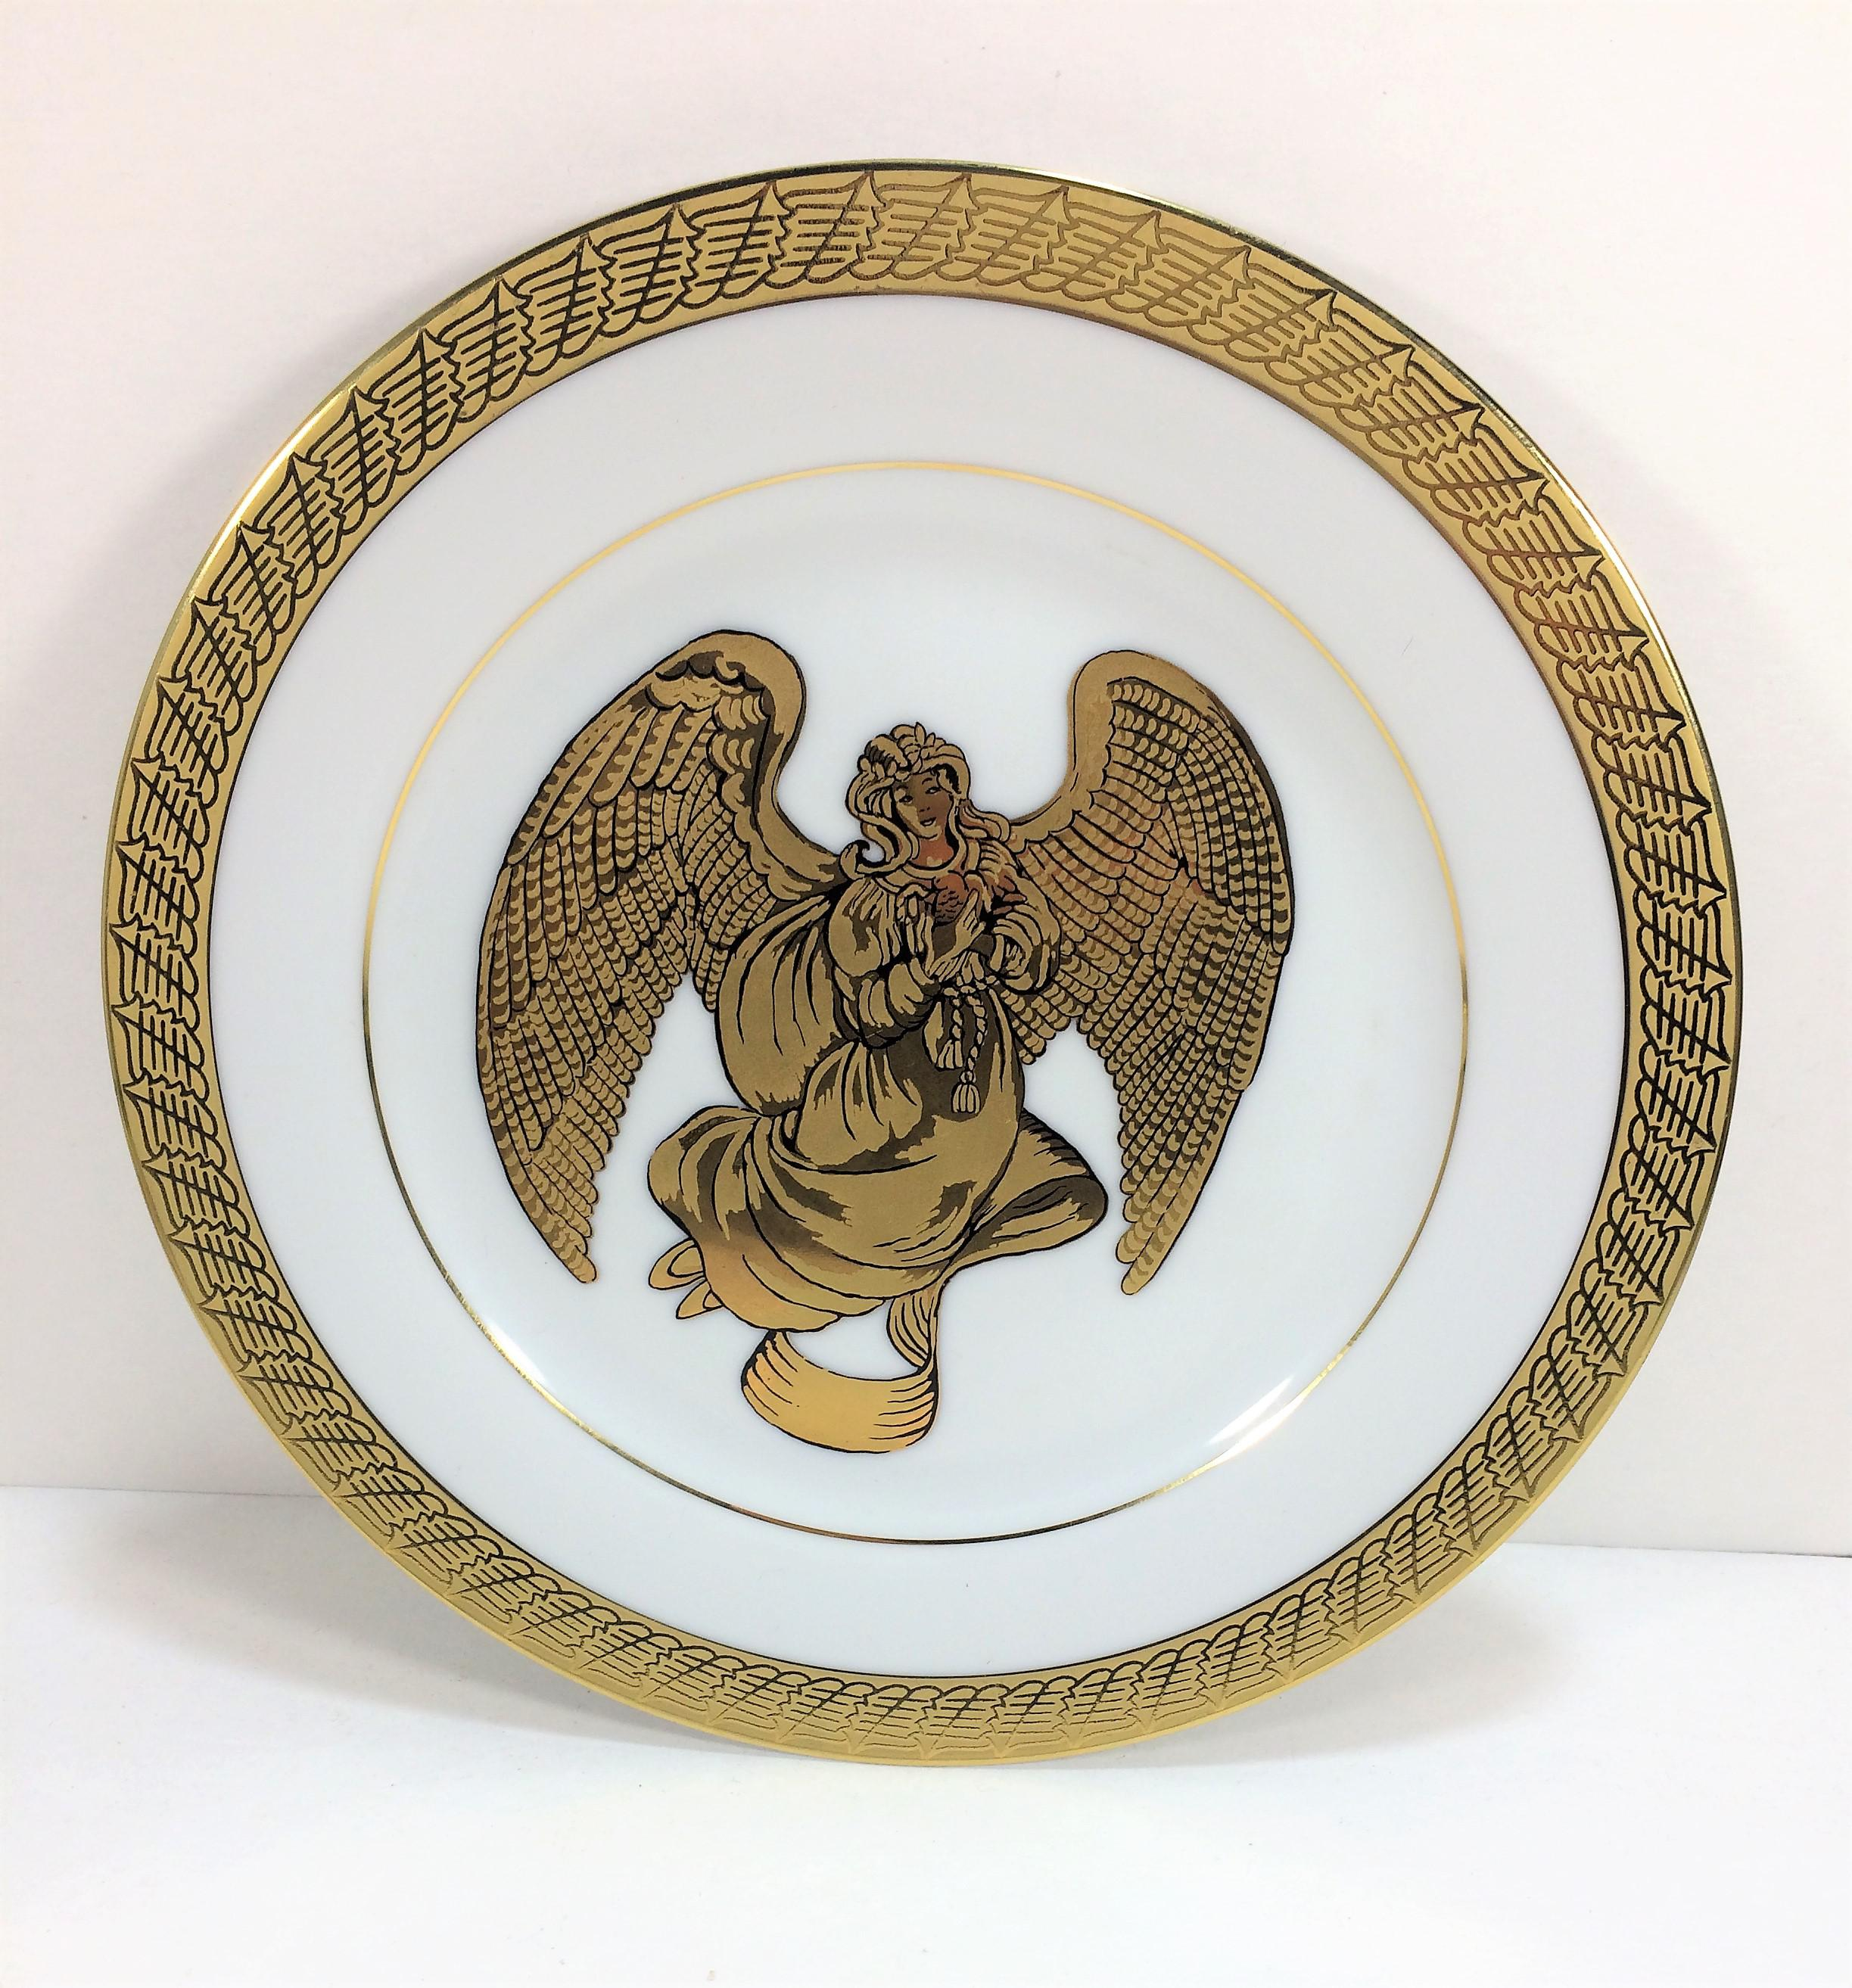 Vintage Renaissance Angels White u0026 Gold Porcelain Dinnerware or Decorative Plates - Set of 4 - & Vintage Renaissance Angels White u0026 Gold Porcelain Dinnerware or ...